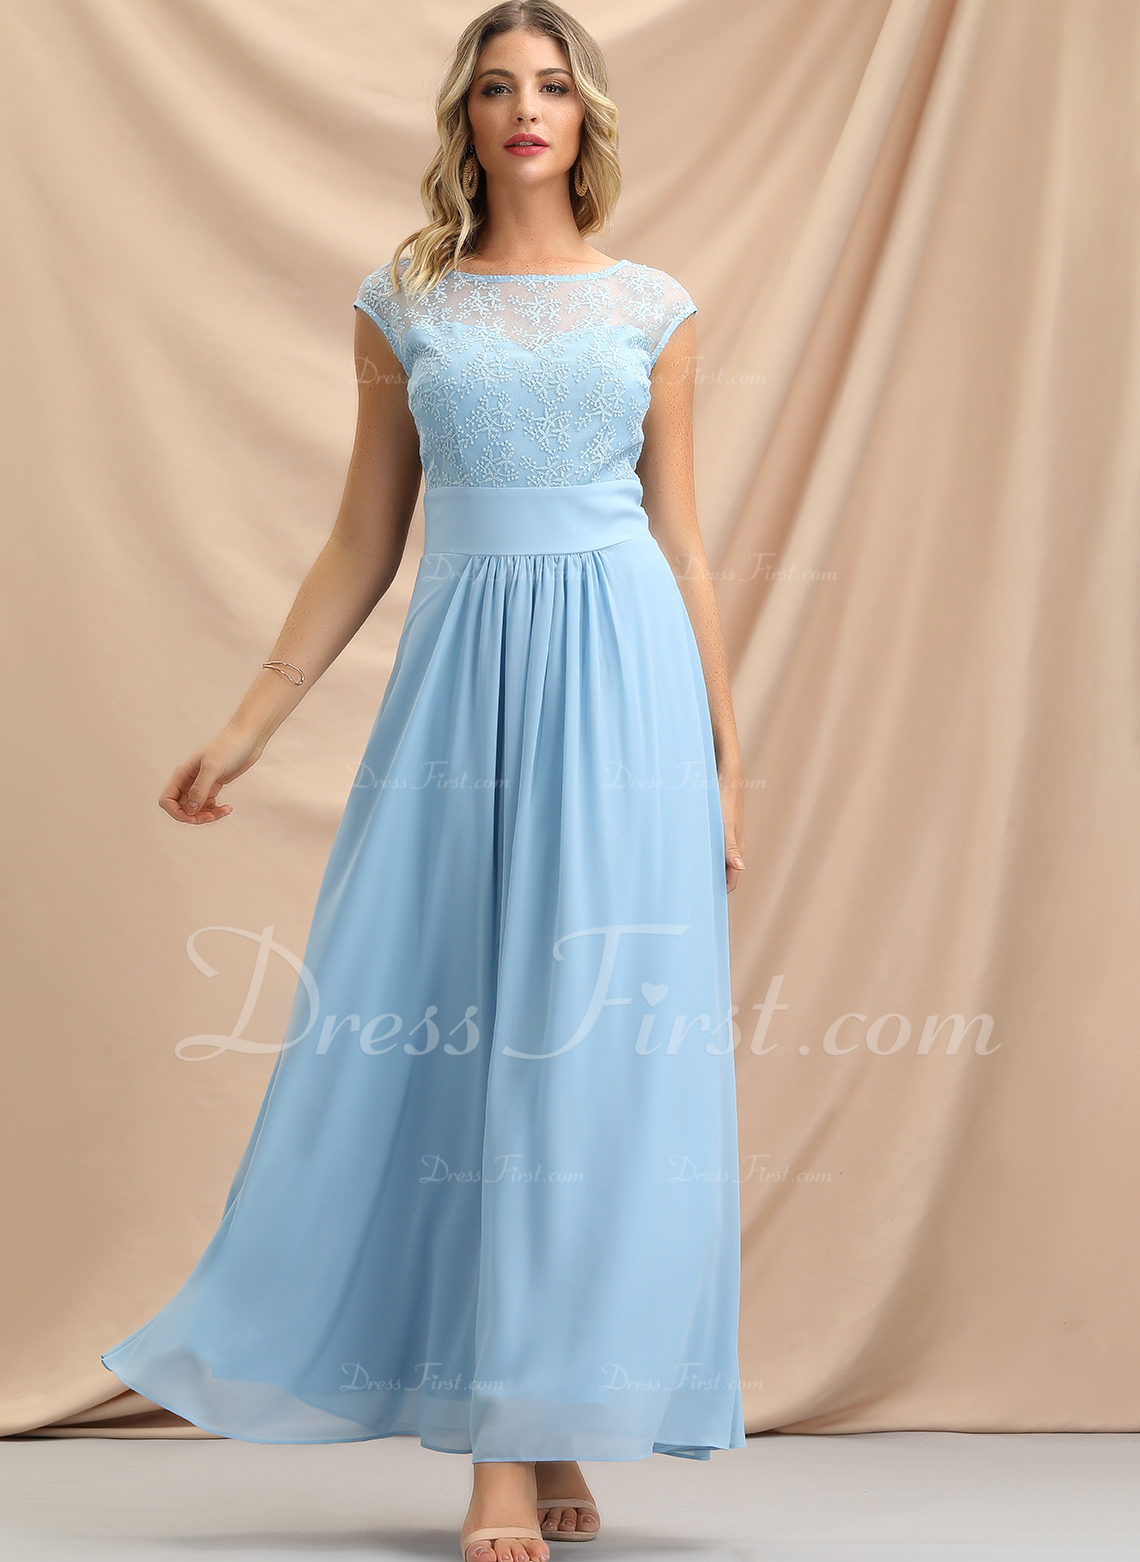 Lace Solid Sheath Sleeveless Maxi Party Dresses